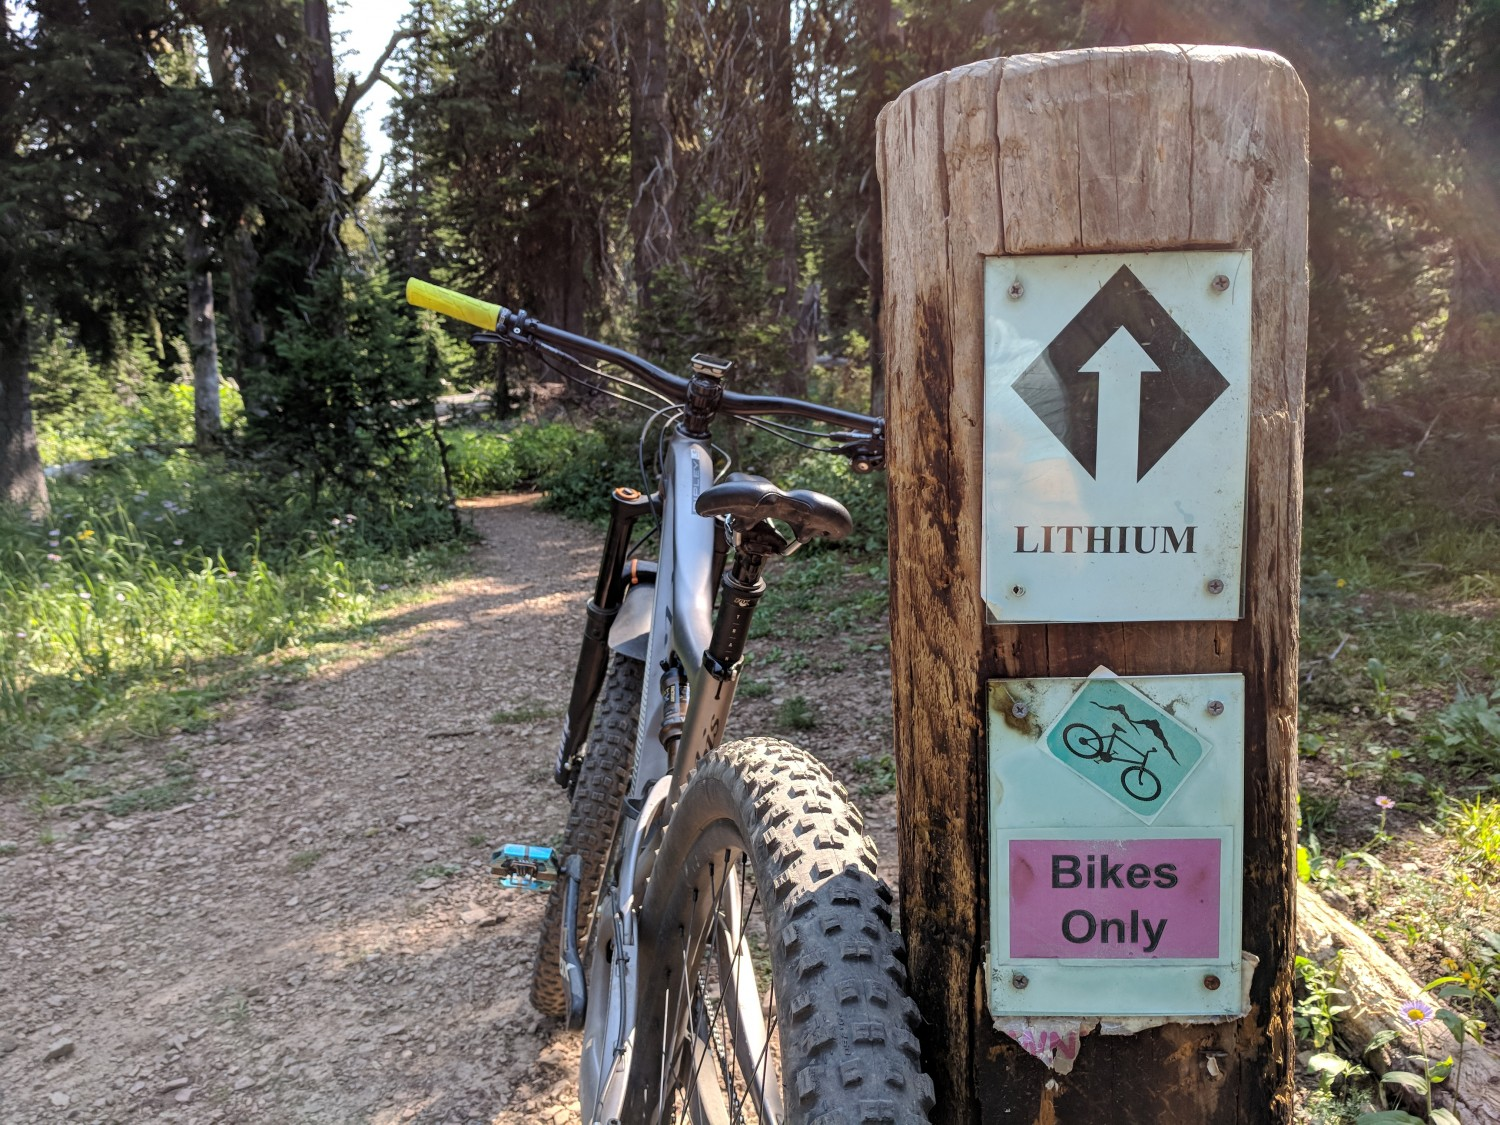 Lithium Bike Only Trail